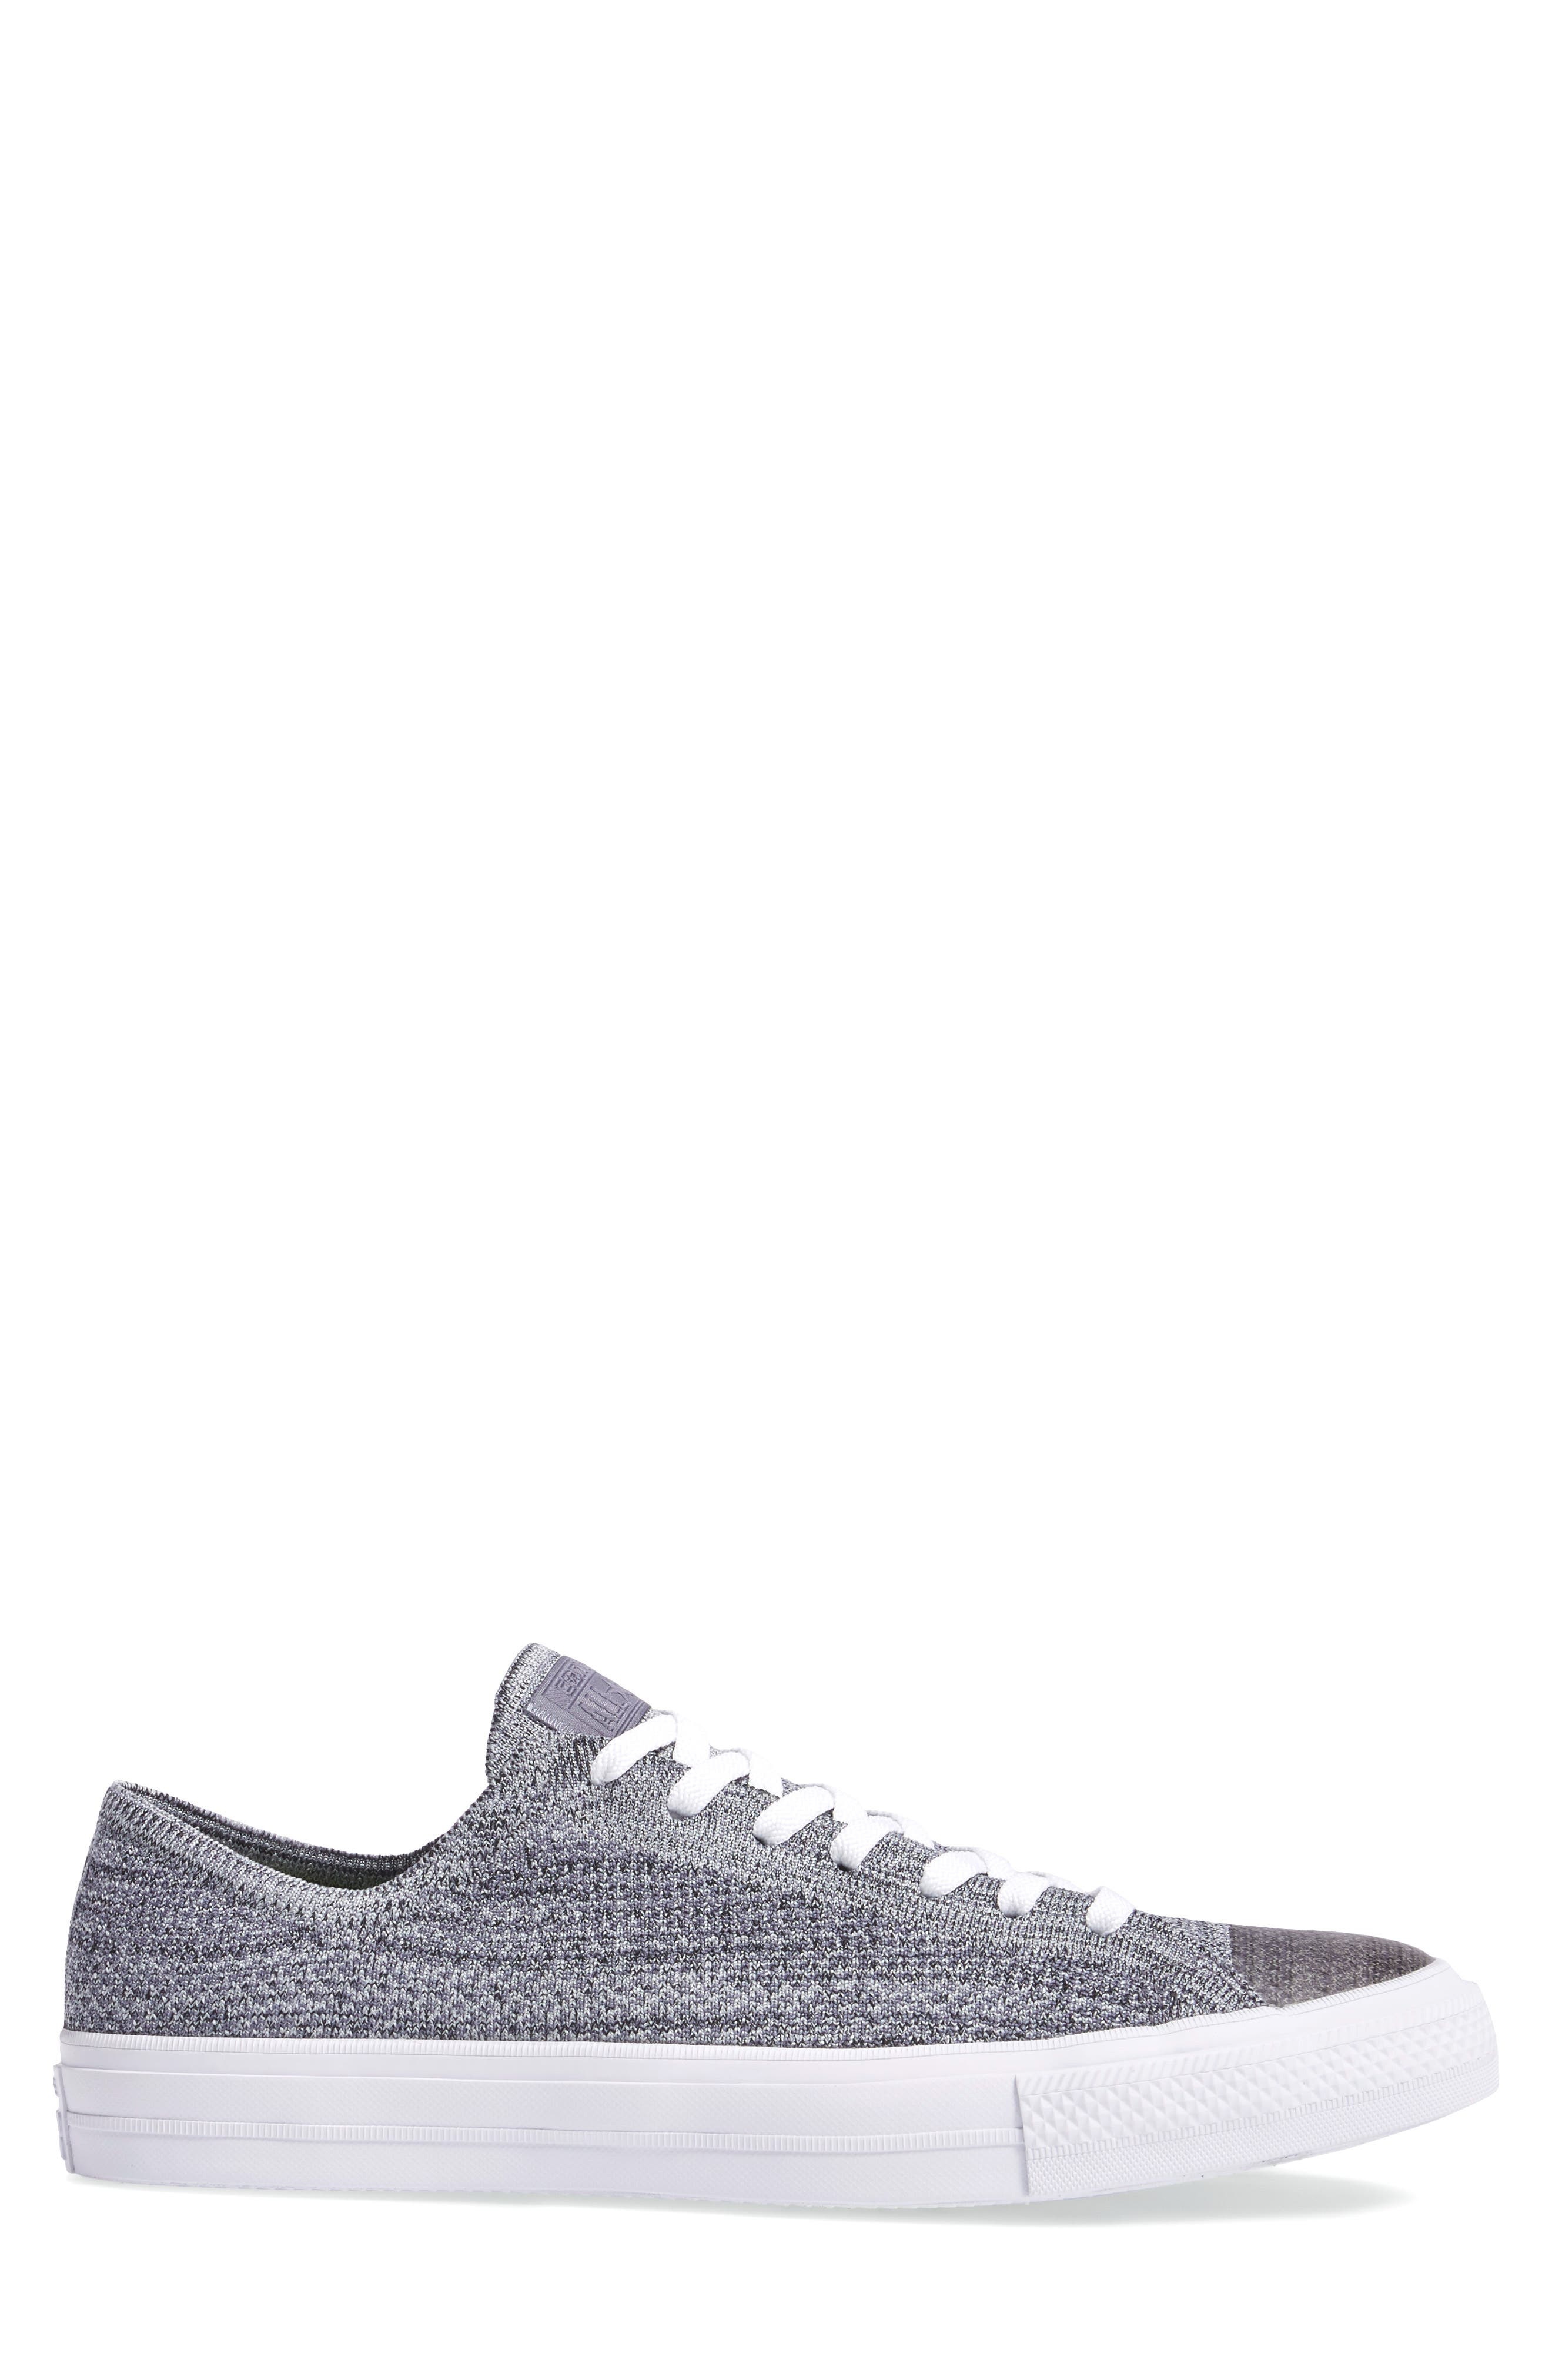 Chuck Taylor<sup>®</sup> All Star<sup>®</sup> Flyknit Sneaker,                             Alternate thumbnail 3, color,                             Carbon